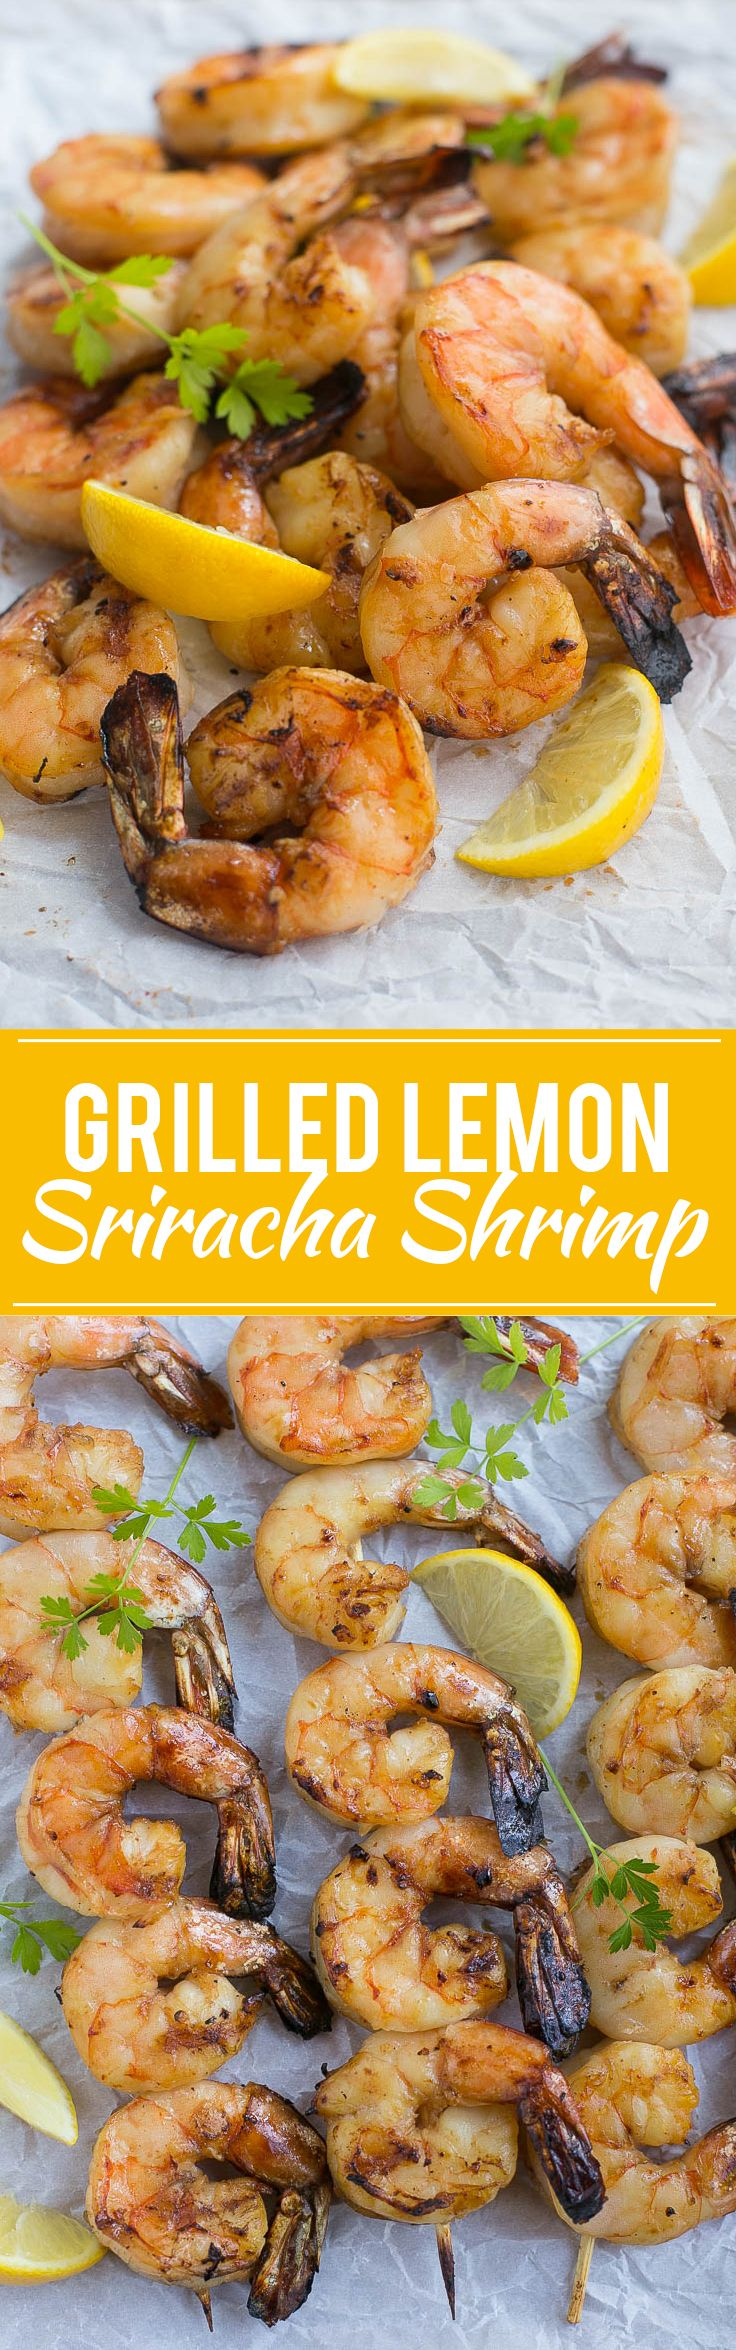 This recipe for lemon sriracha shrimp is large succulent shrimp in a flavorful marinade, threaded onto skewers and grilled to perfection. It's my family's favorite shrimp recipe! Ad